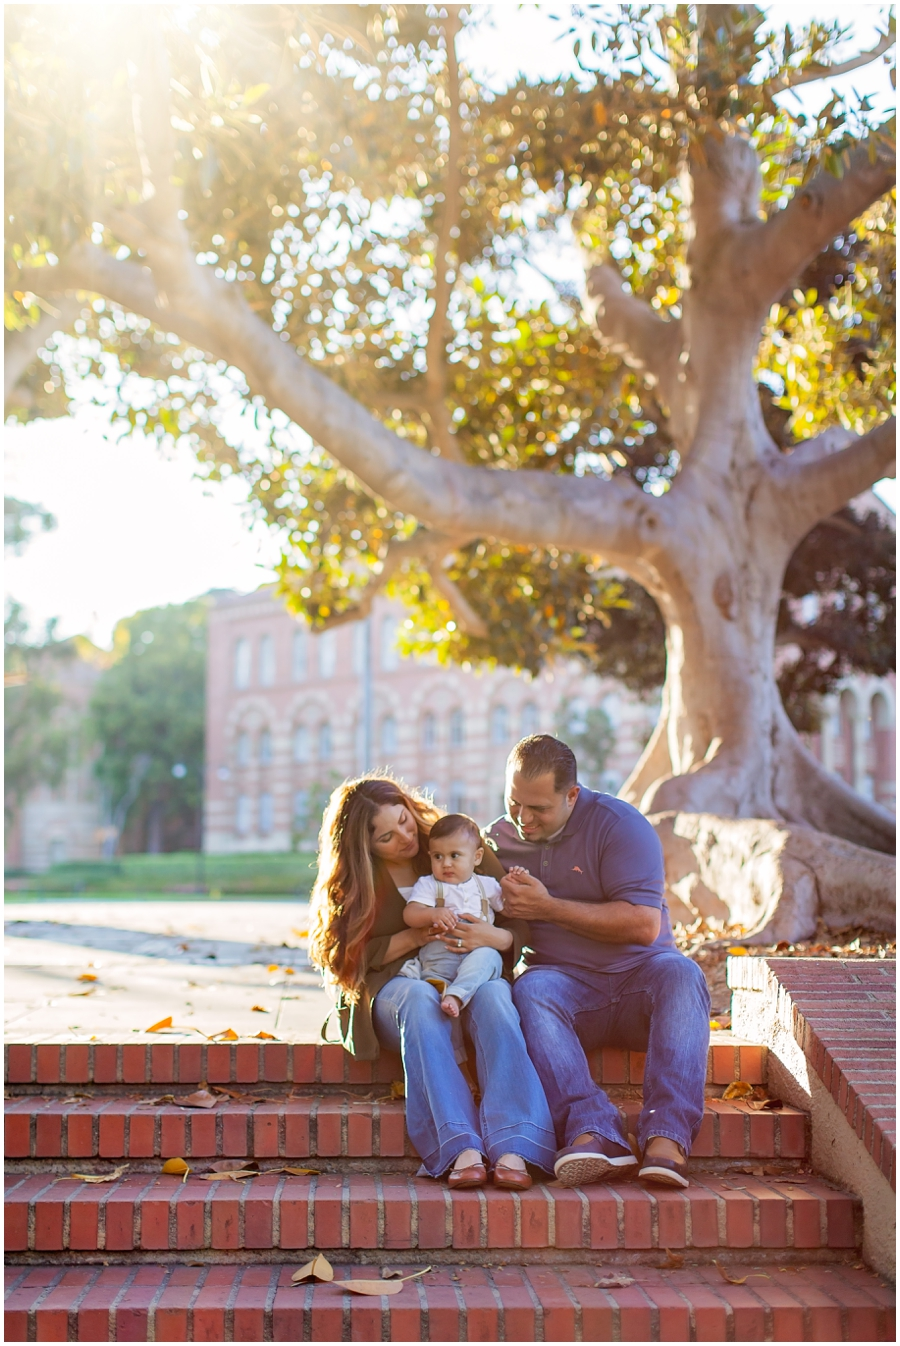 9 Month Old with Mom and Dad by Just Maggie Photography - Los Angeles Baby Photographer